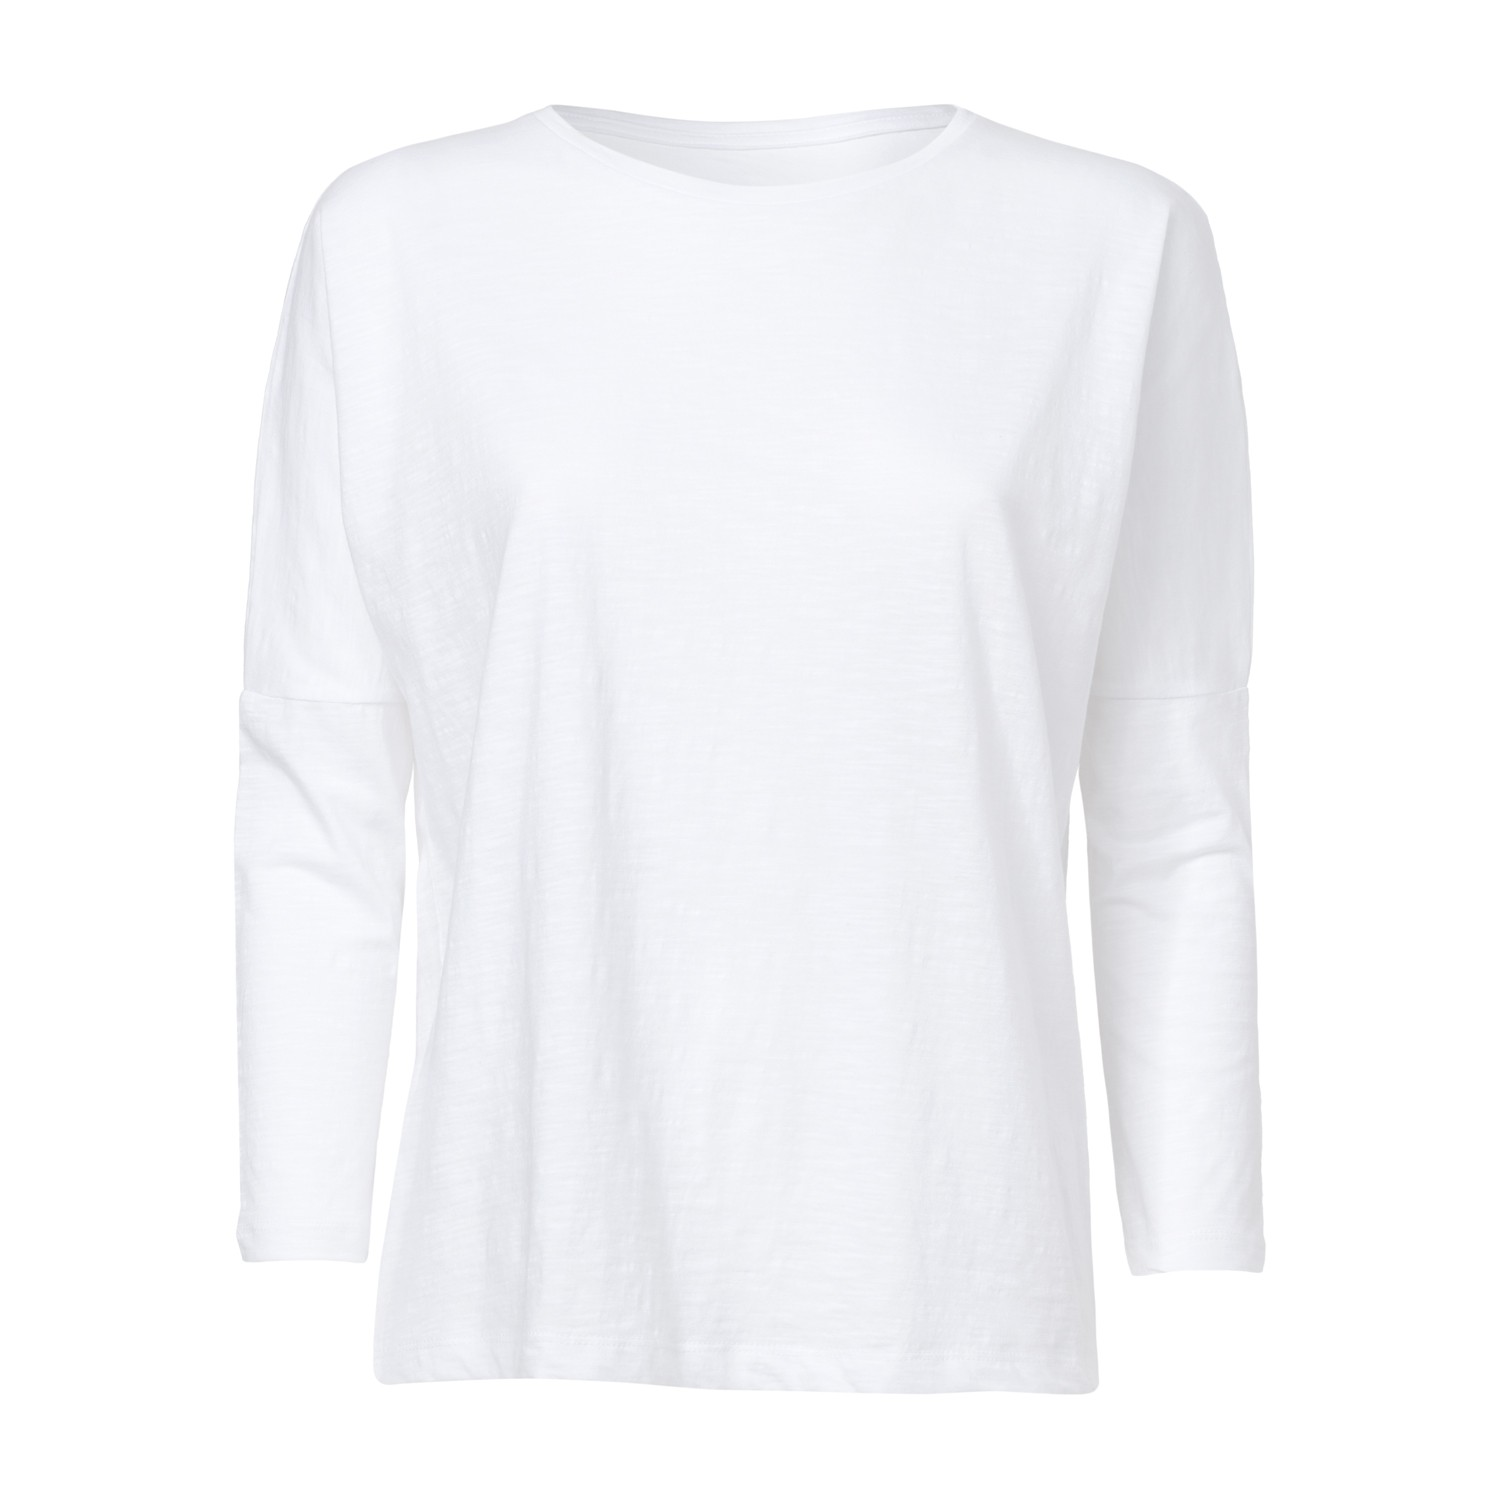 ThokkThokk Damen Drop-Shoulder Longsleeve White...